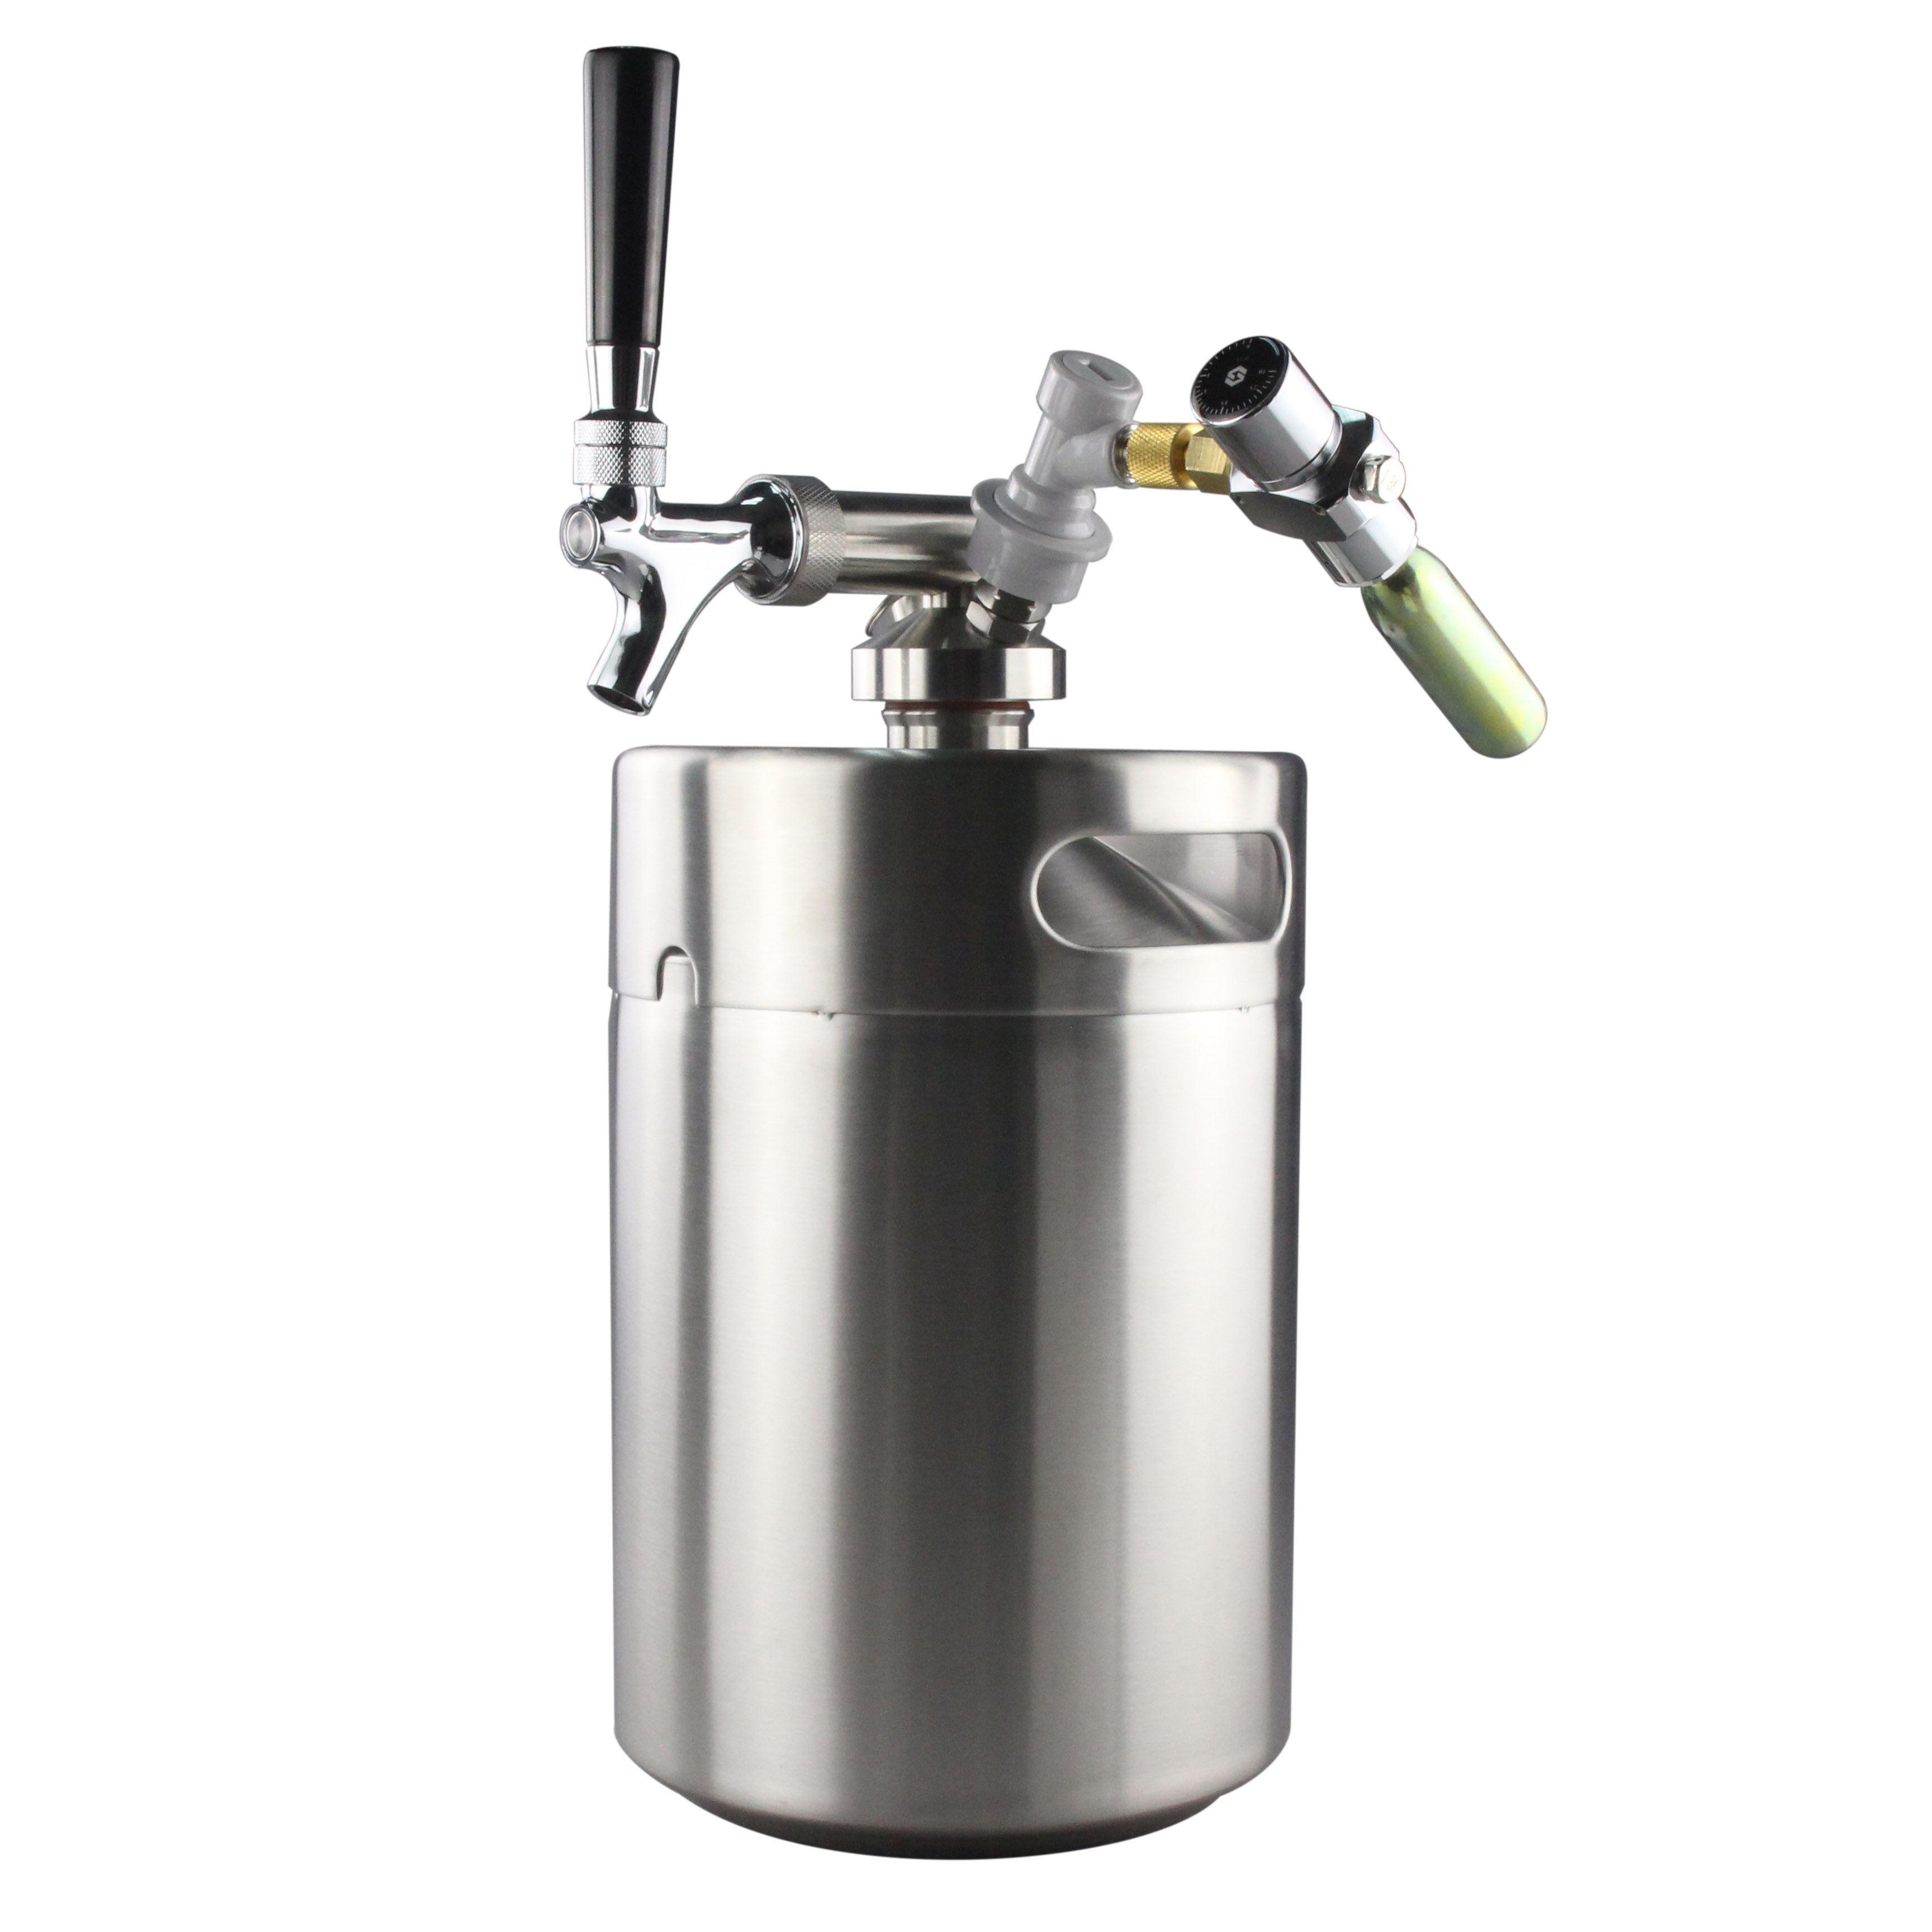 Force Carbonating Homebrew Single Ball Lock Draft Beer